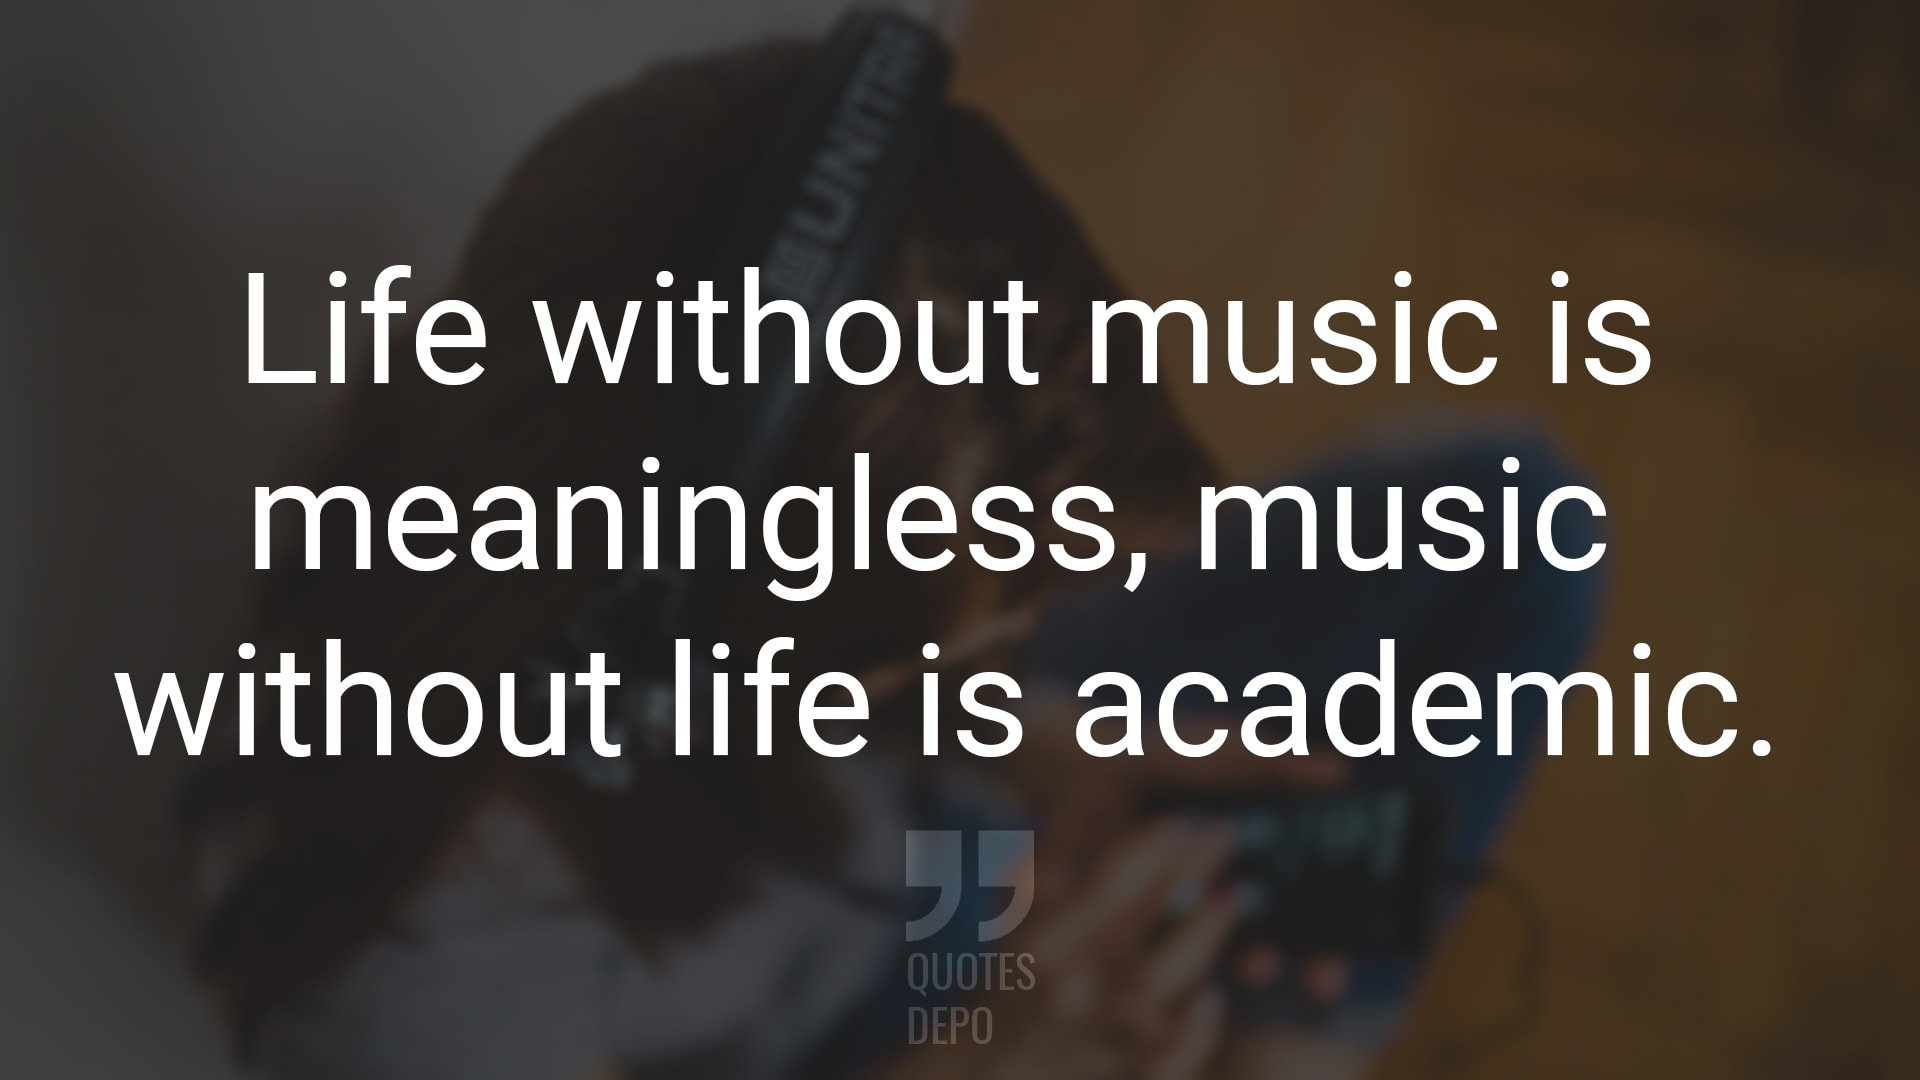 life without music is meaningless